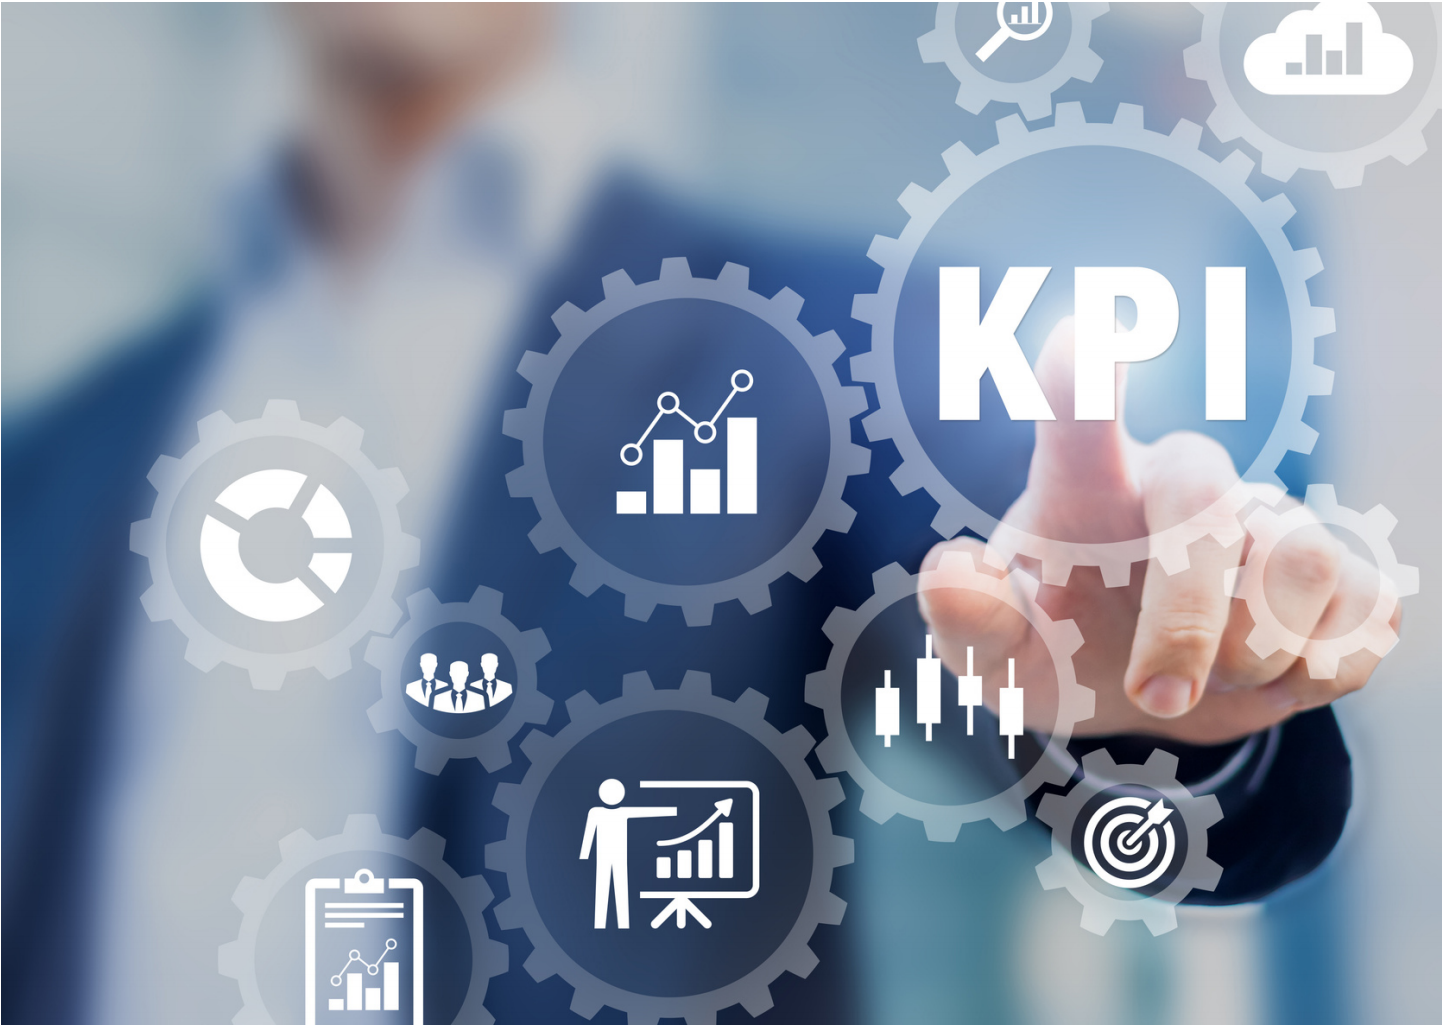 shared kpis between brands and influencers